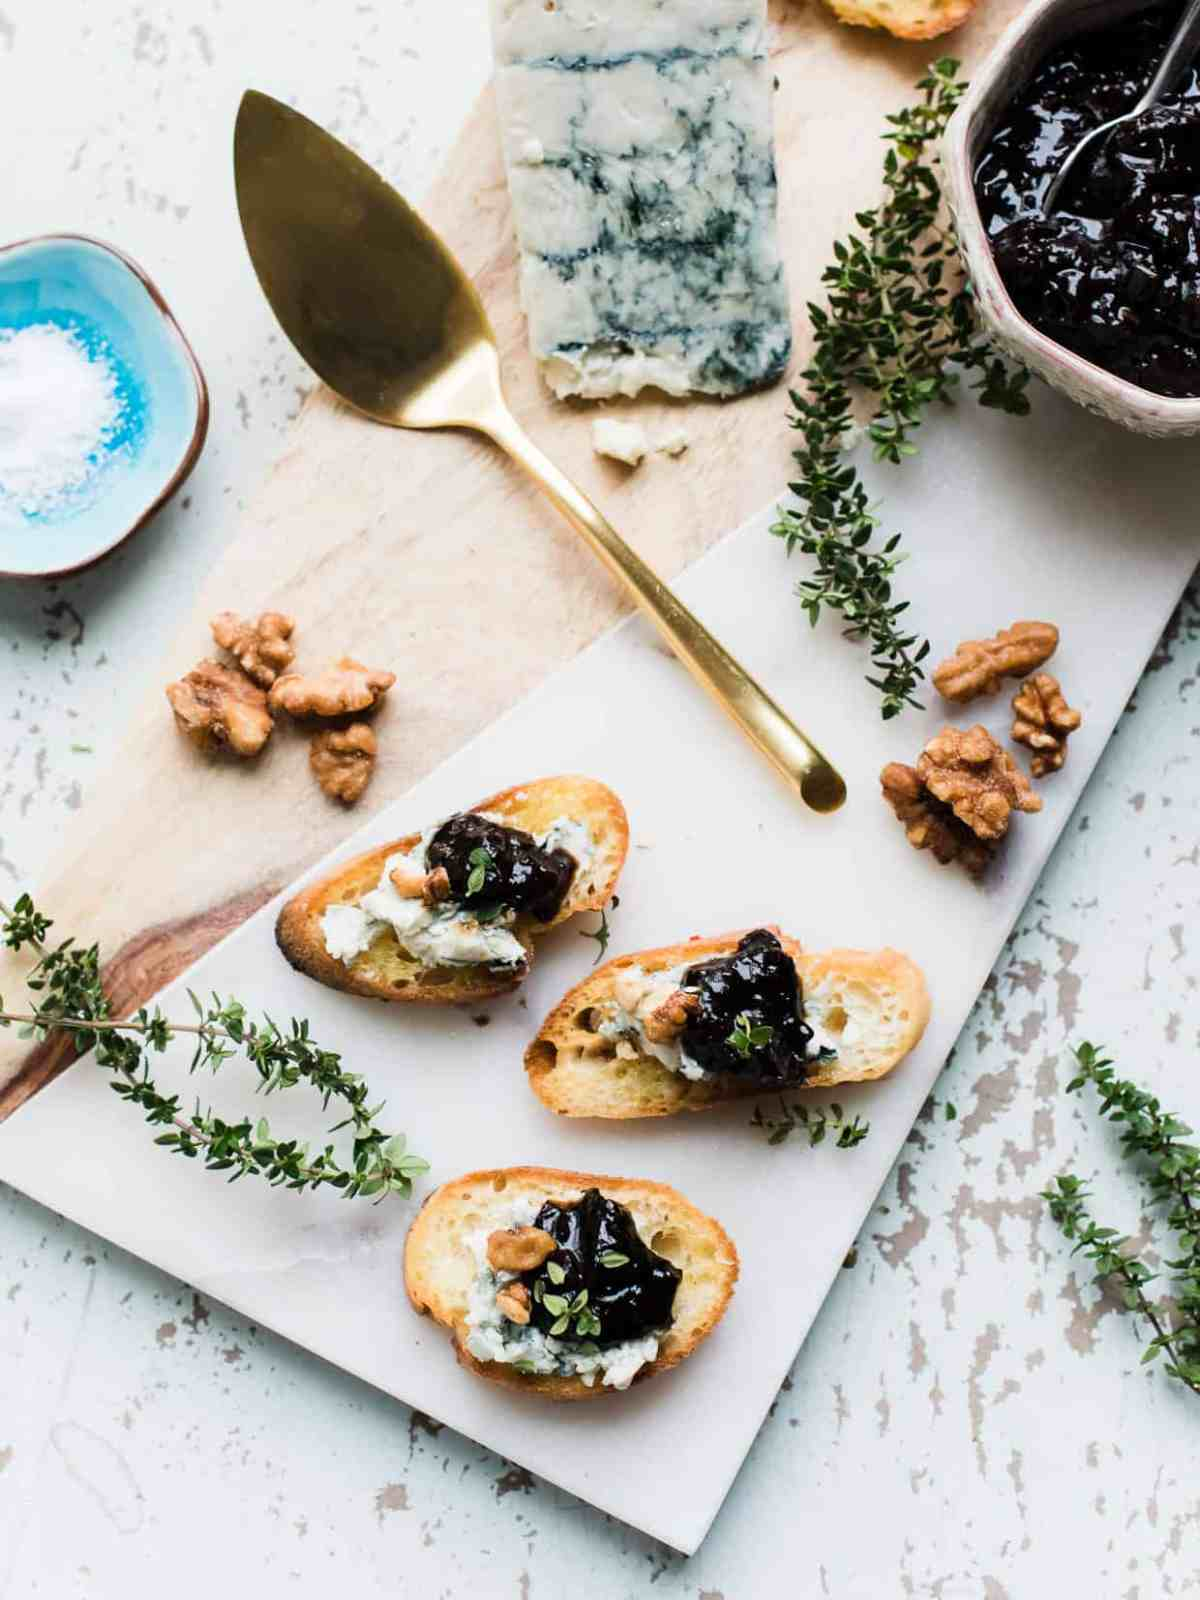 Overhead view of Crostini with Gorgonzola and Prune Chutney plated on a white serving board with sprigs of fresh thyme, walnuts and Gorgonzola cheese surrounding.